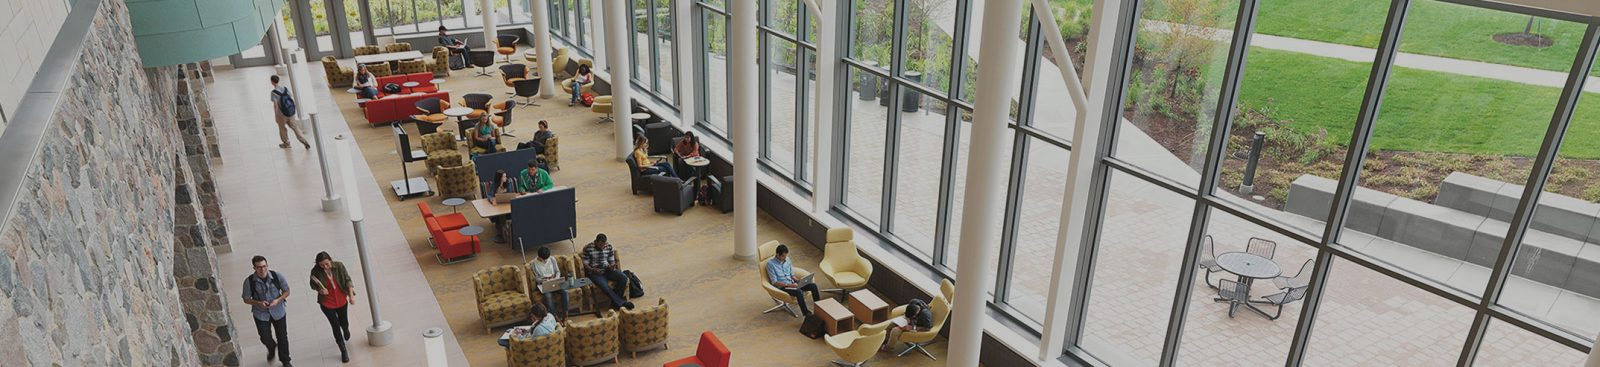 How to reduce noise in an open plan office image